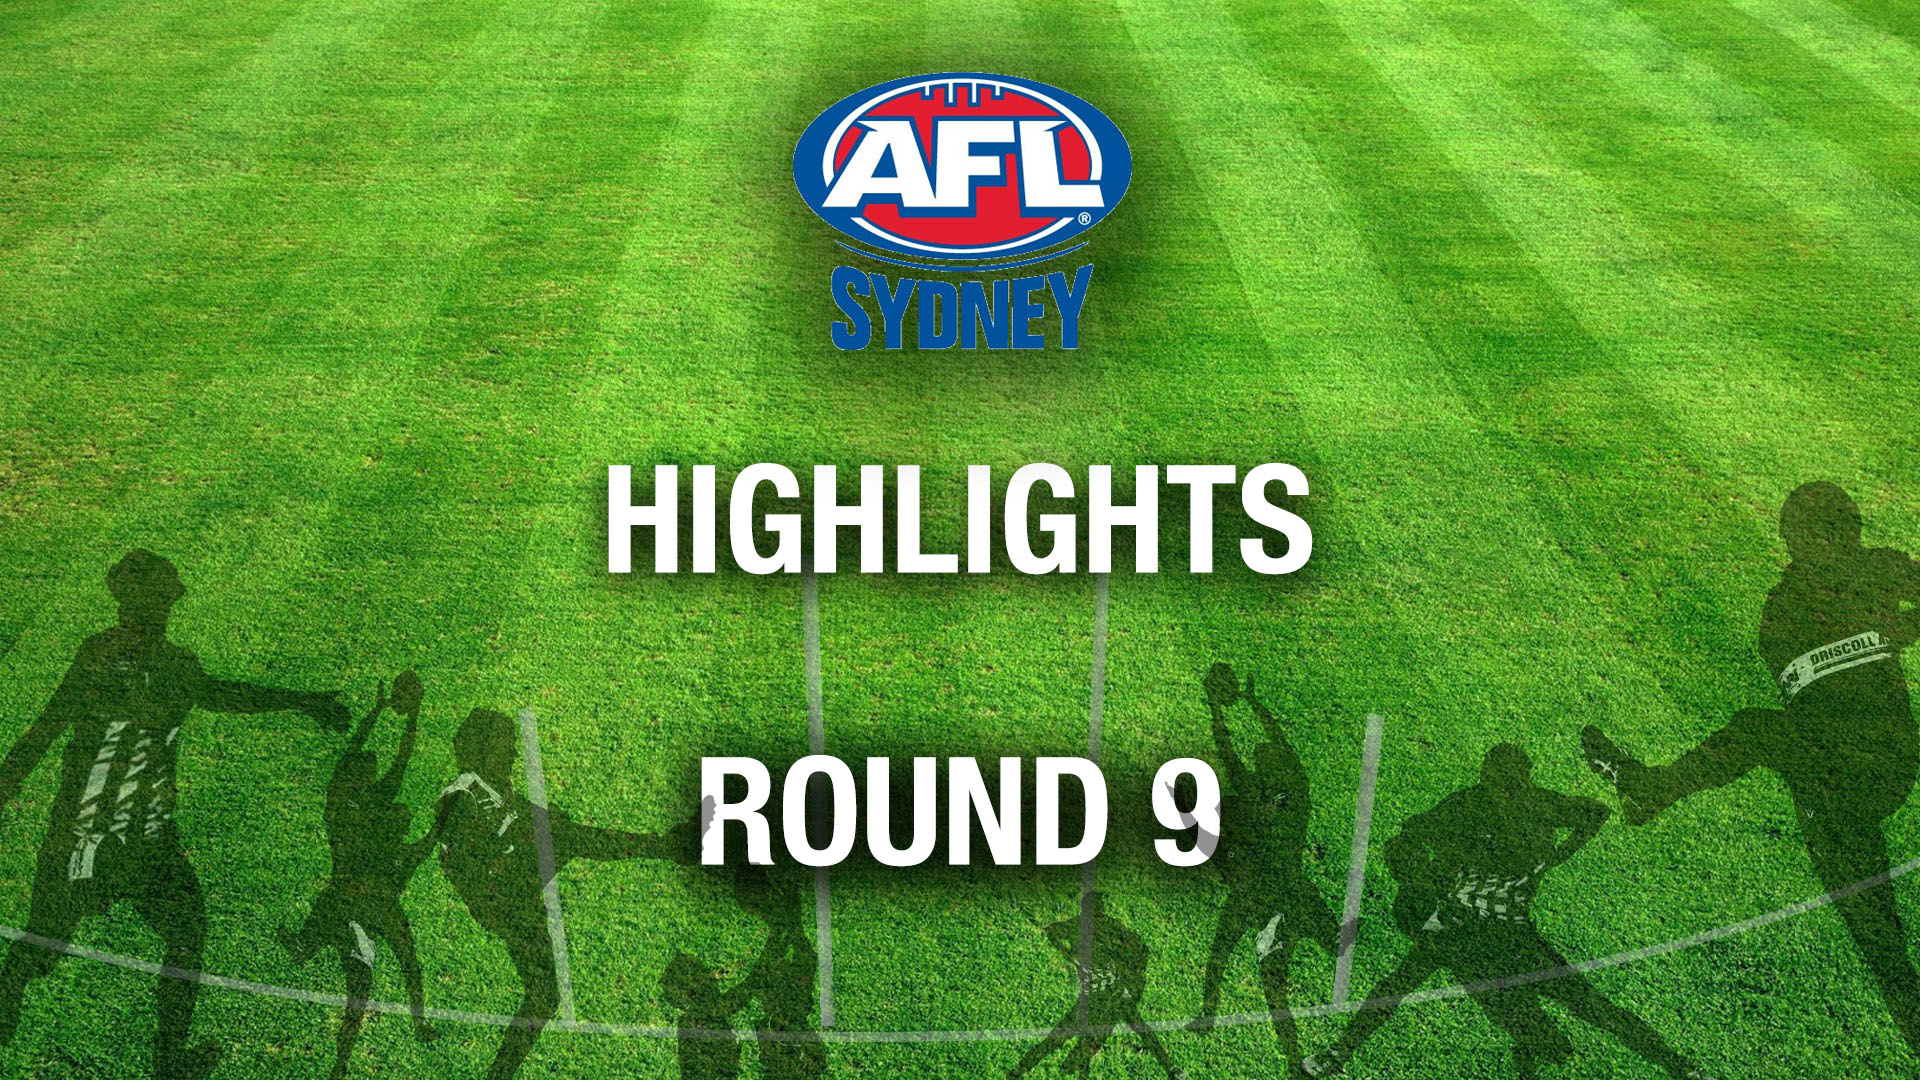 AFL Sydney RD 9 HIGHLIGHTS